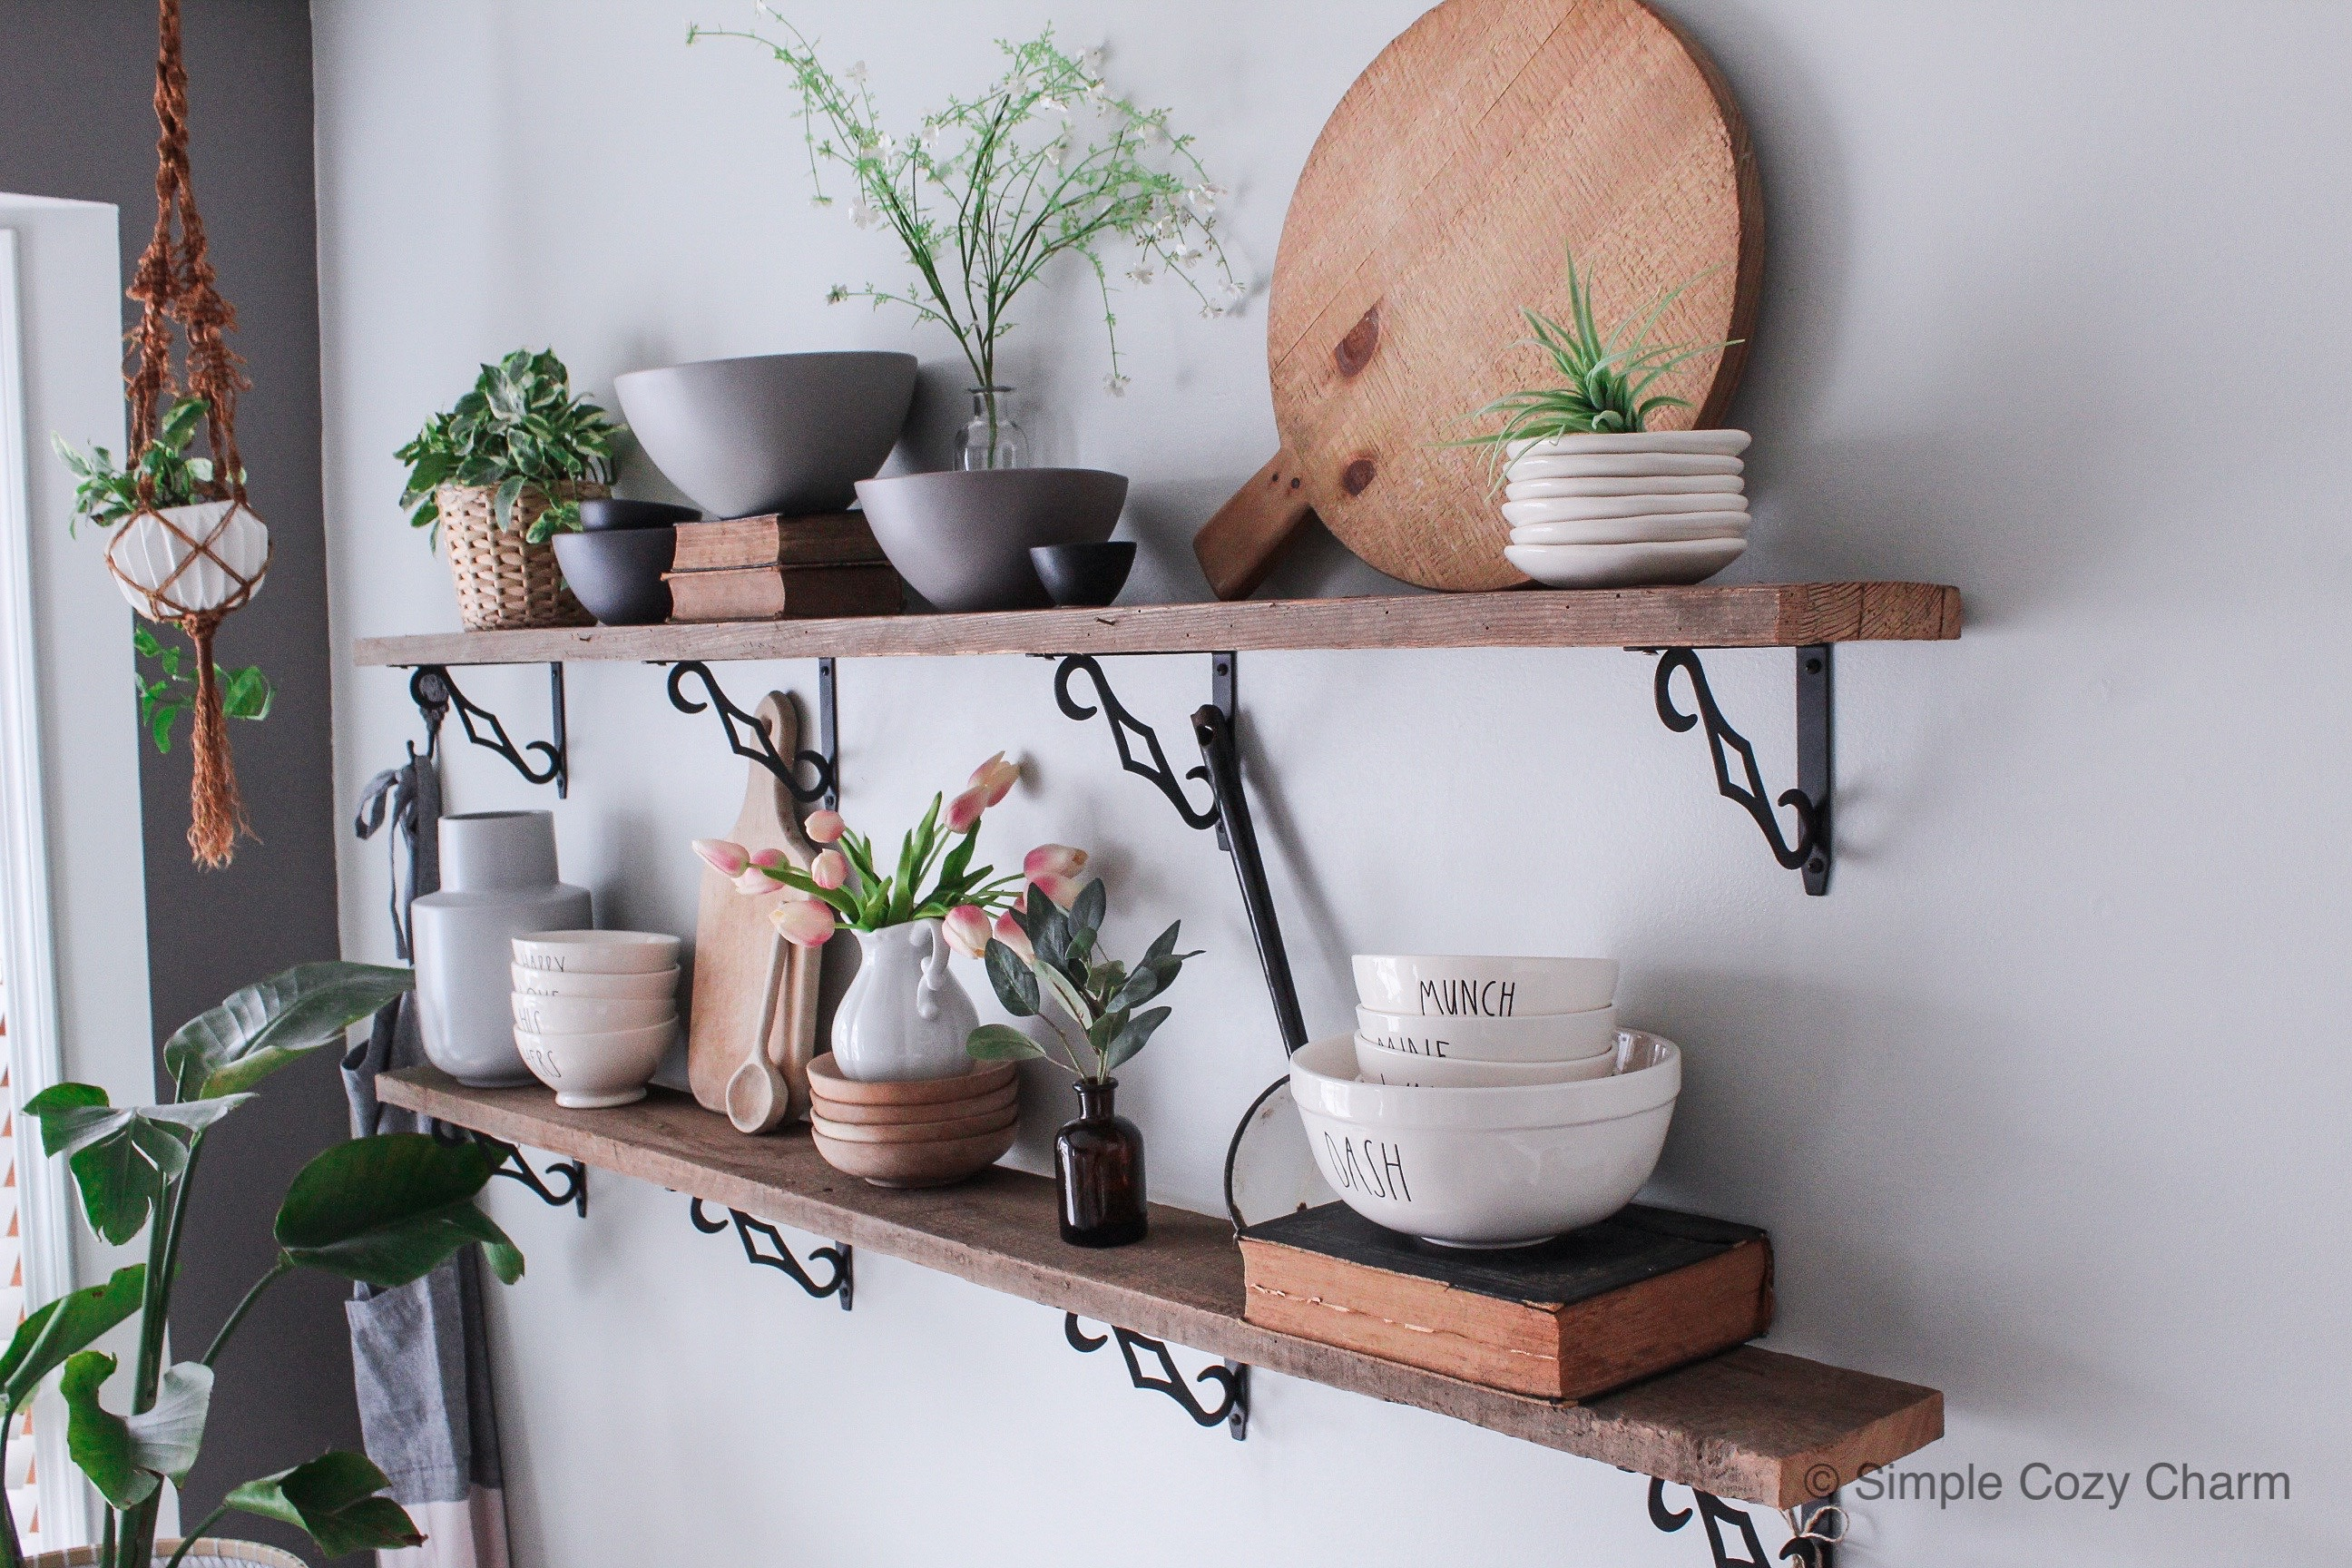 decor pieces perfect for shelf styling - open shelves